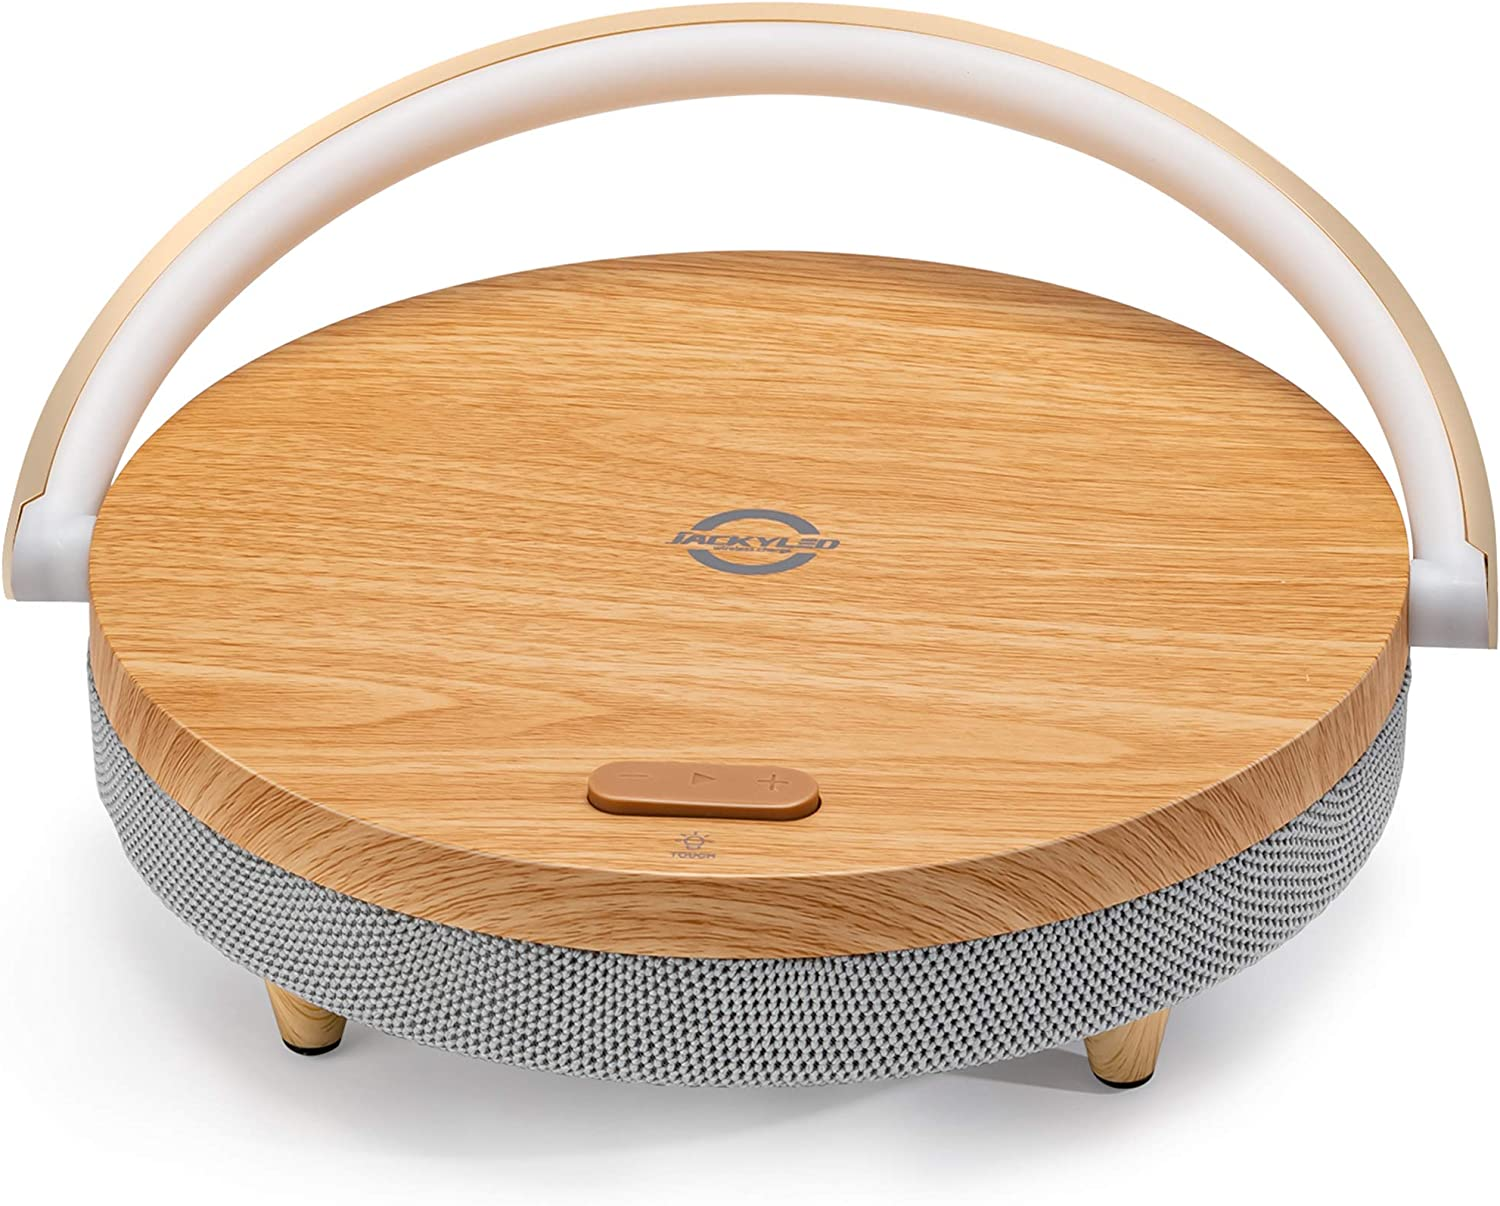 Portable Bluetooth Speaker with Wireless Charger and LED Night Light JACKYLED Fast Charging Stand for Indoor Outdoor Compatible with iOS and Android Devices iPhone AirPods2 Galaxy Wood Grain